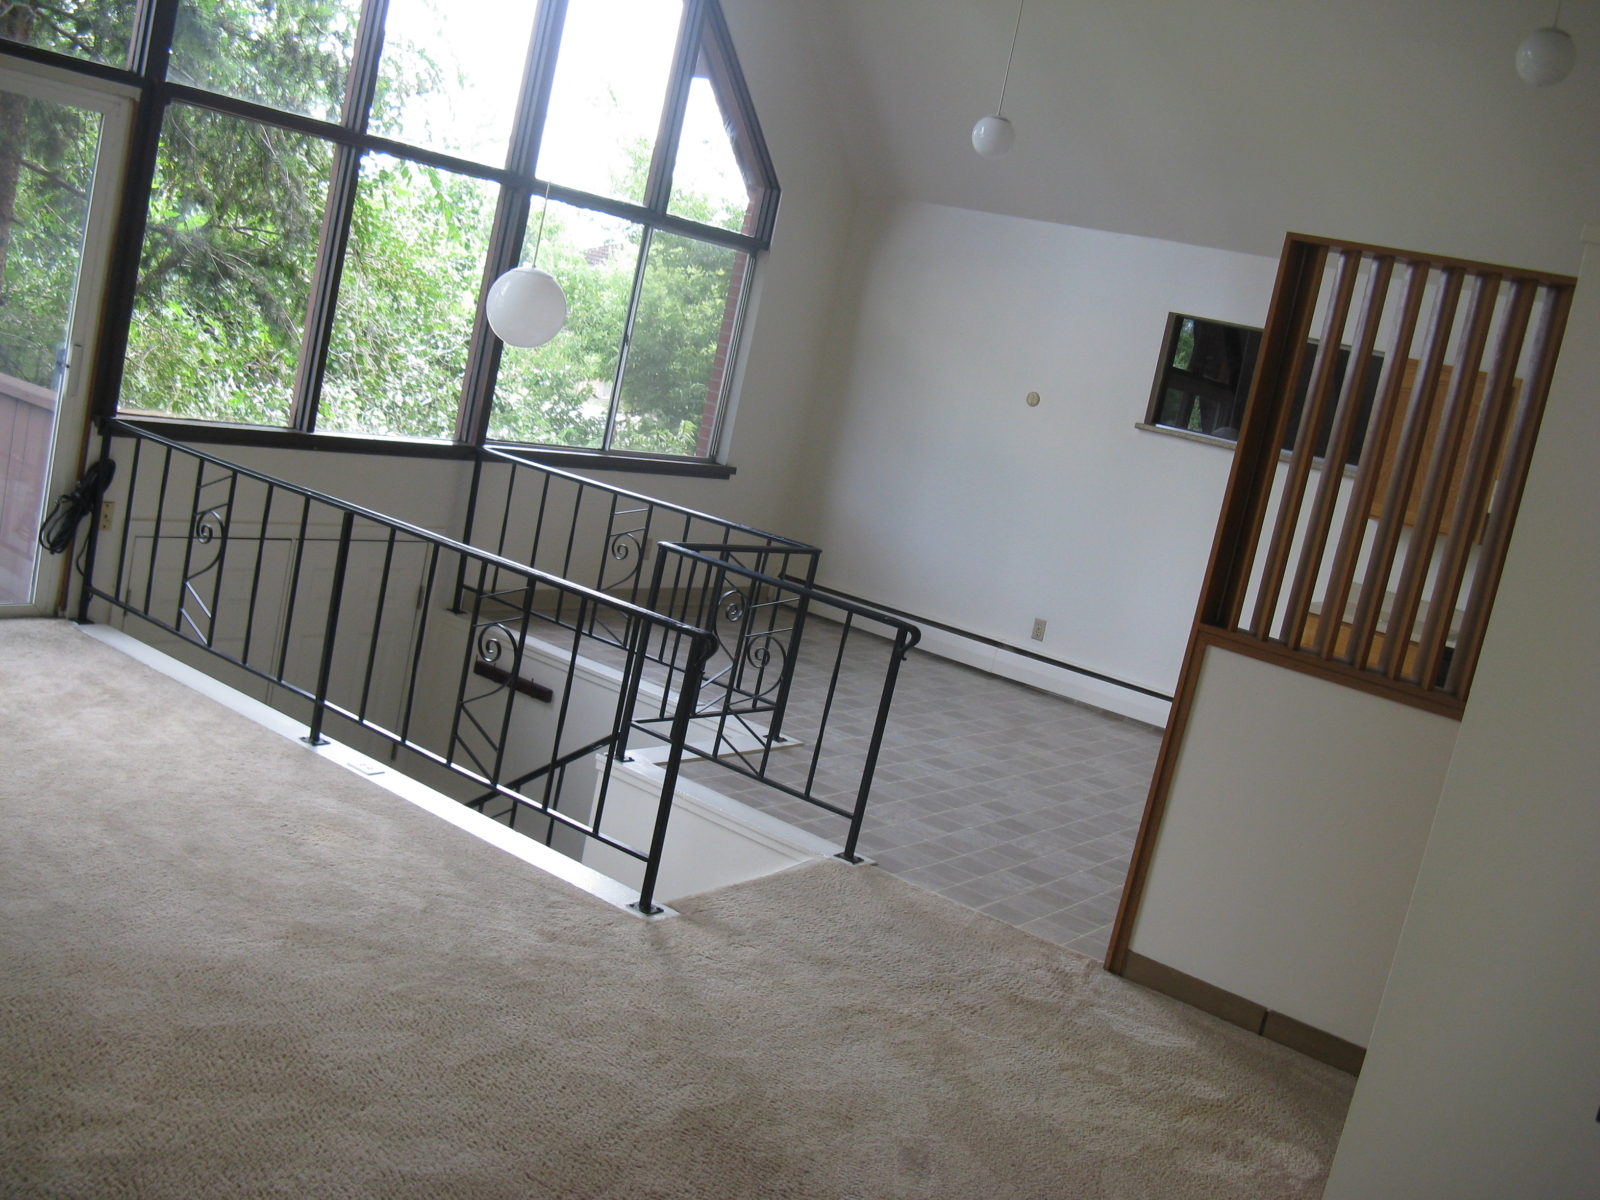 694 Dining Area from Living Room